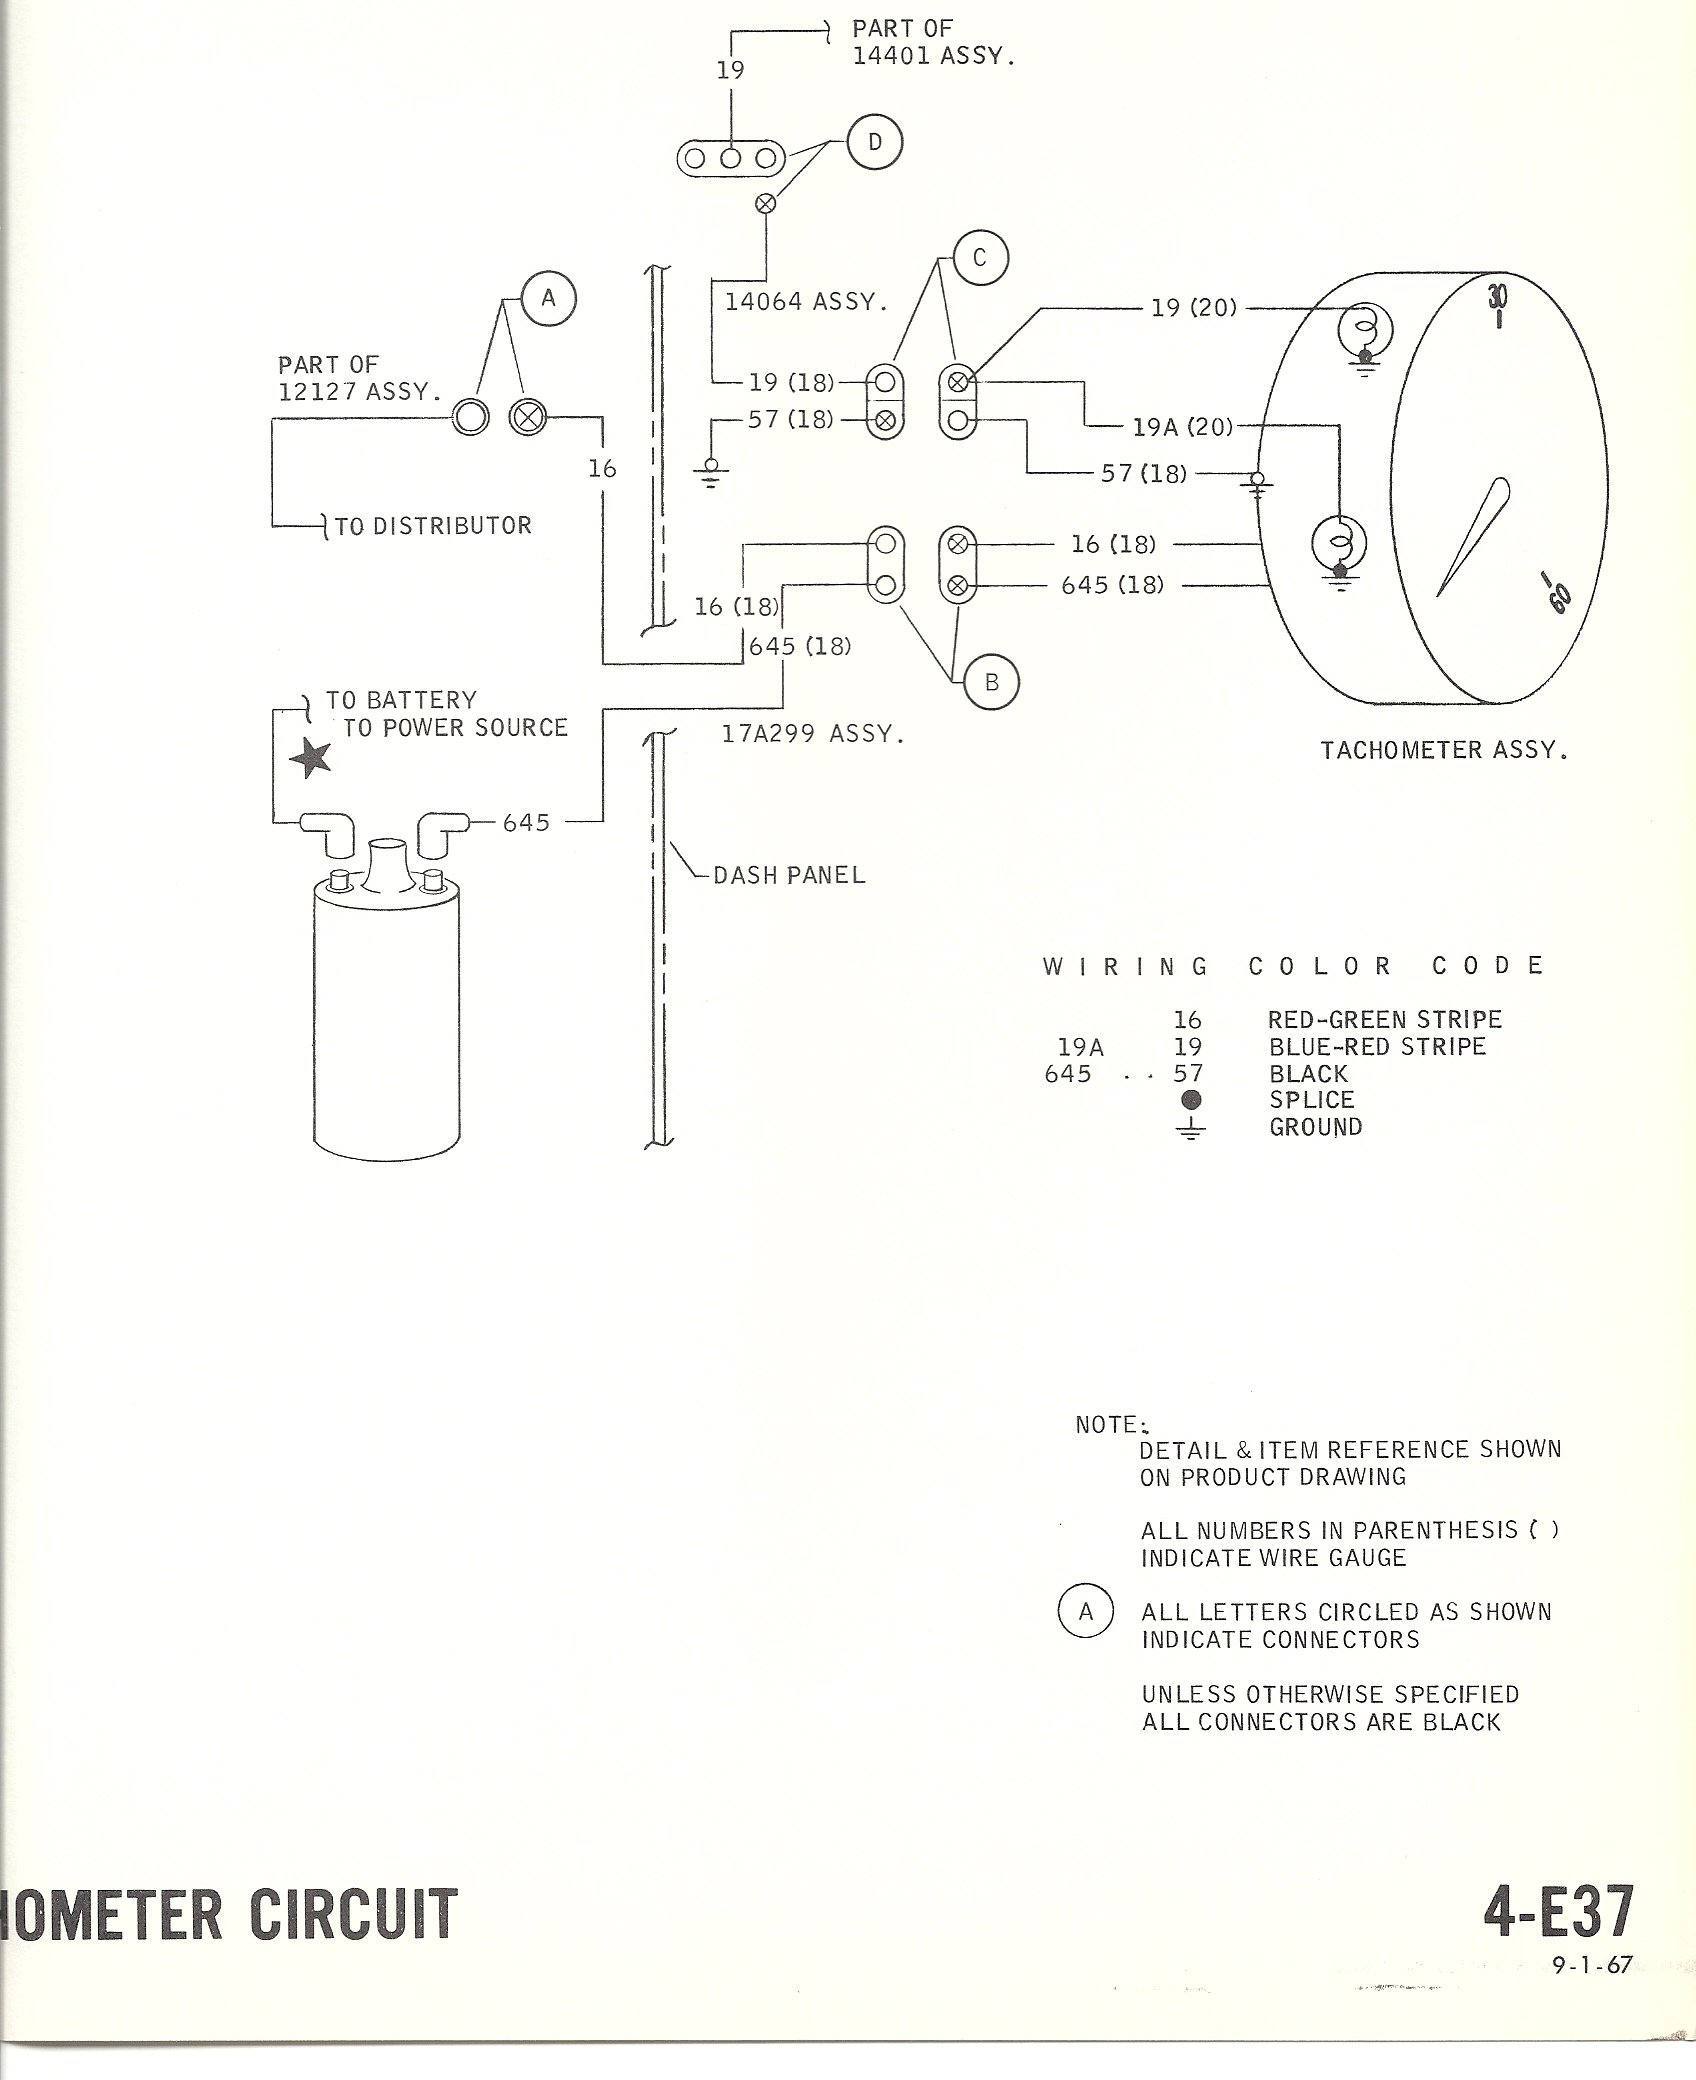 65 Mustang Dash Wiring Diagram Free Download Archive Of Automotive 1997 Gt 1971 Schematic Schematics Rh Thyl Co Uk